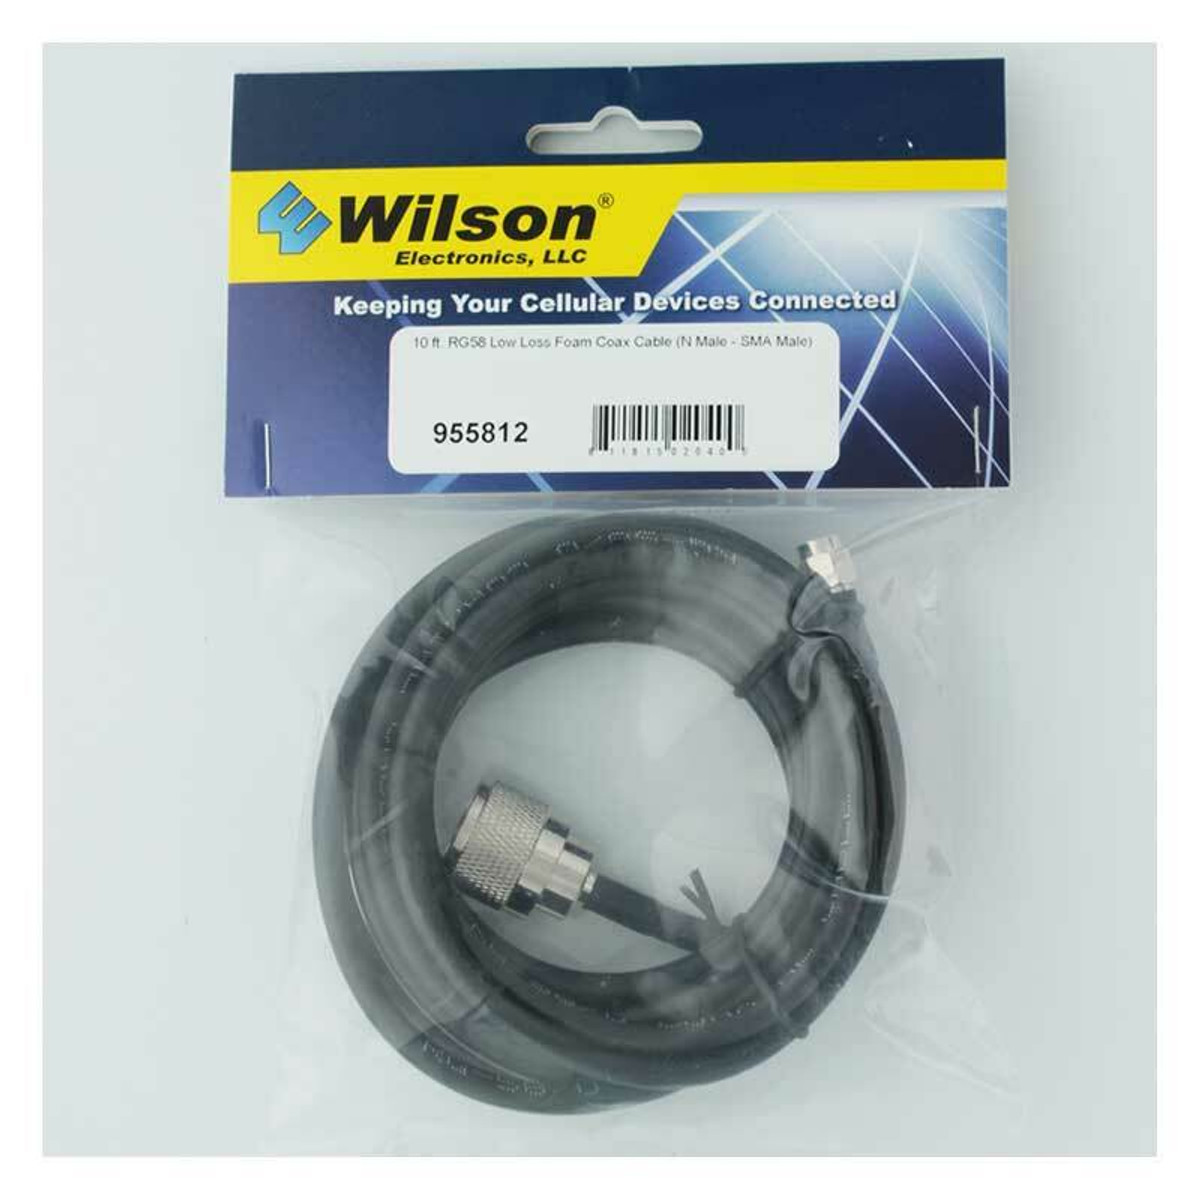 Wilson Electronics weBoost Wilson 955812 RG58 Extension N-Male to SMA-Male or 10f t Black Cable